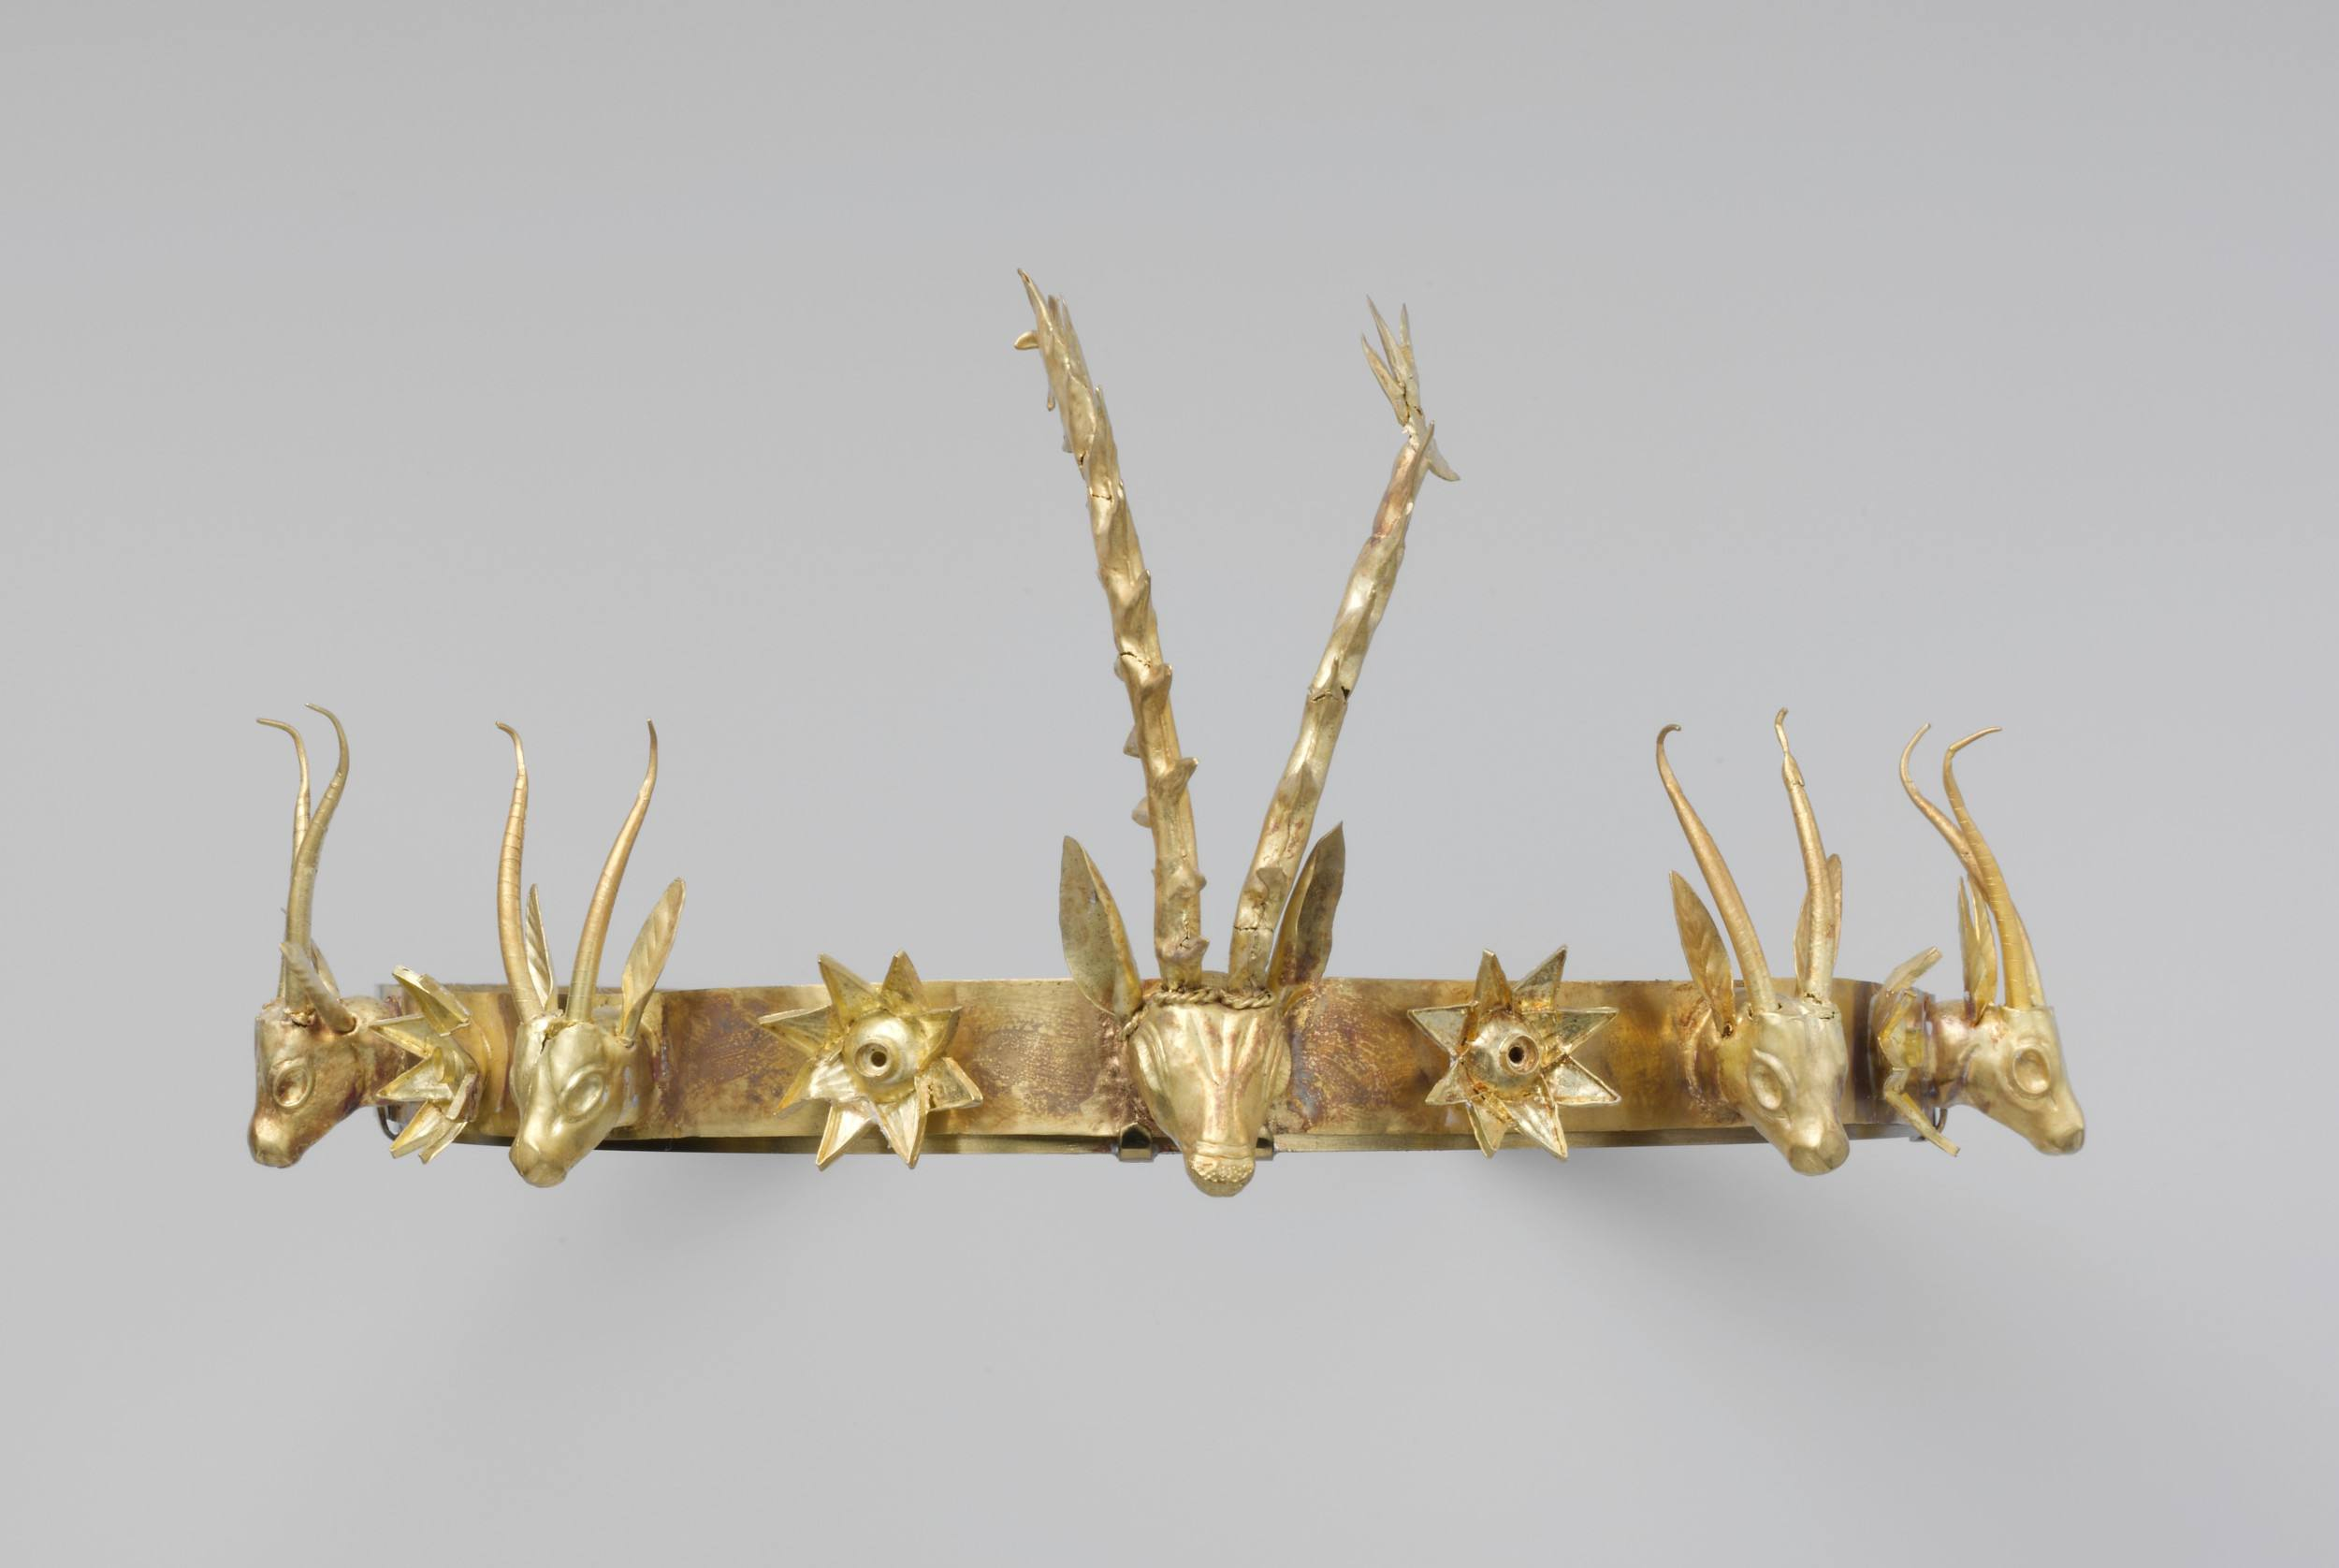 Headband with Heads of Gazelles and a Stag Between Stars or Flowers, Second Intermediate Period Egypt Dynasty 15